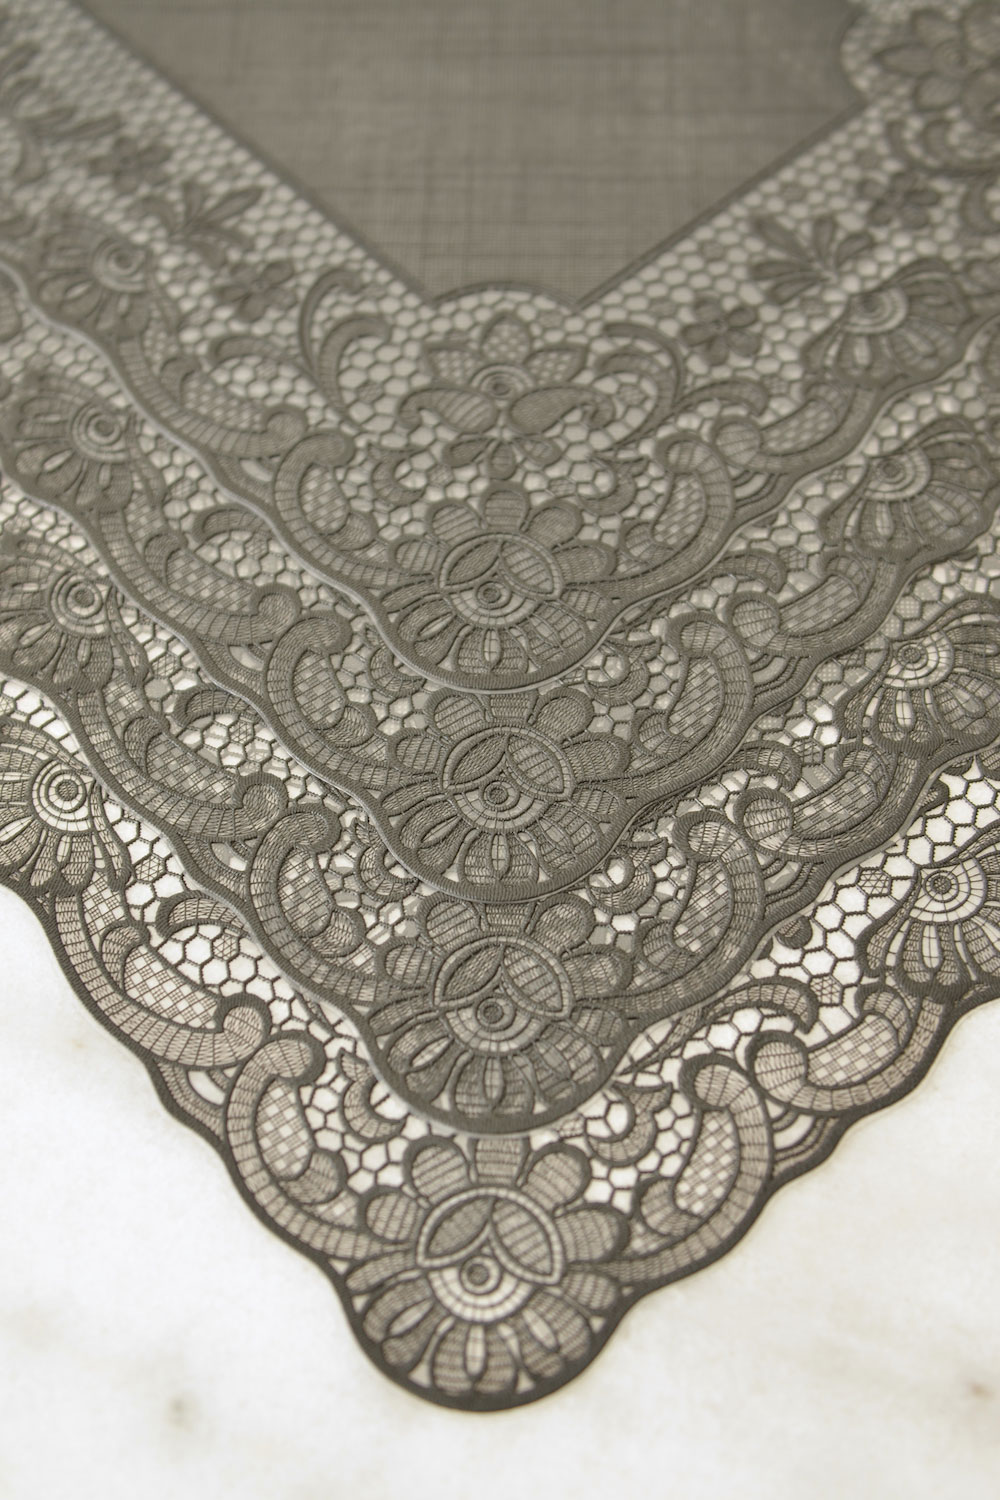 Vintage Lace Vinyl Placemats Set Of 4 Masquerade